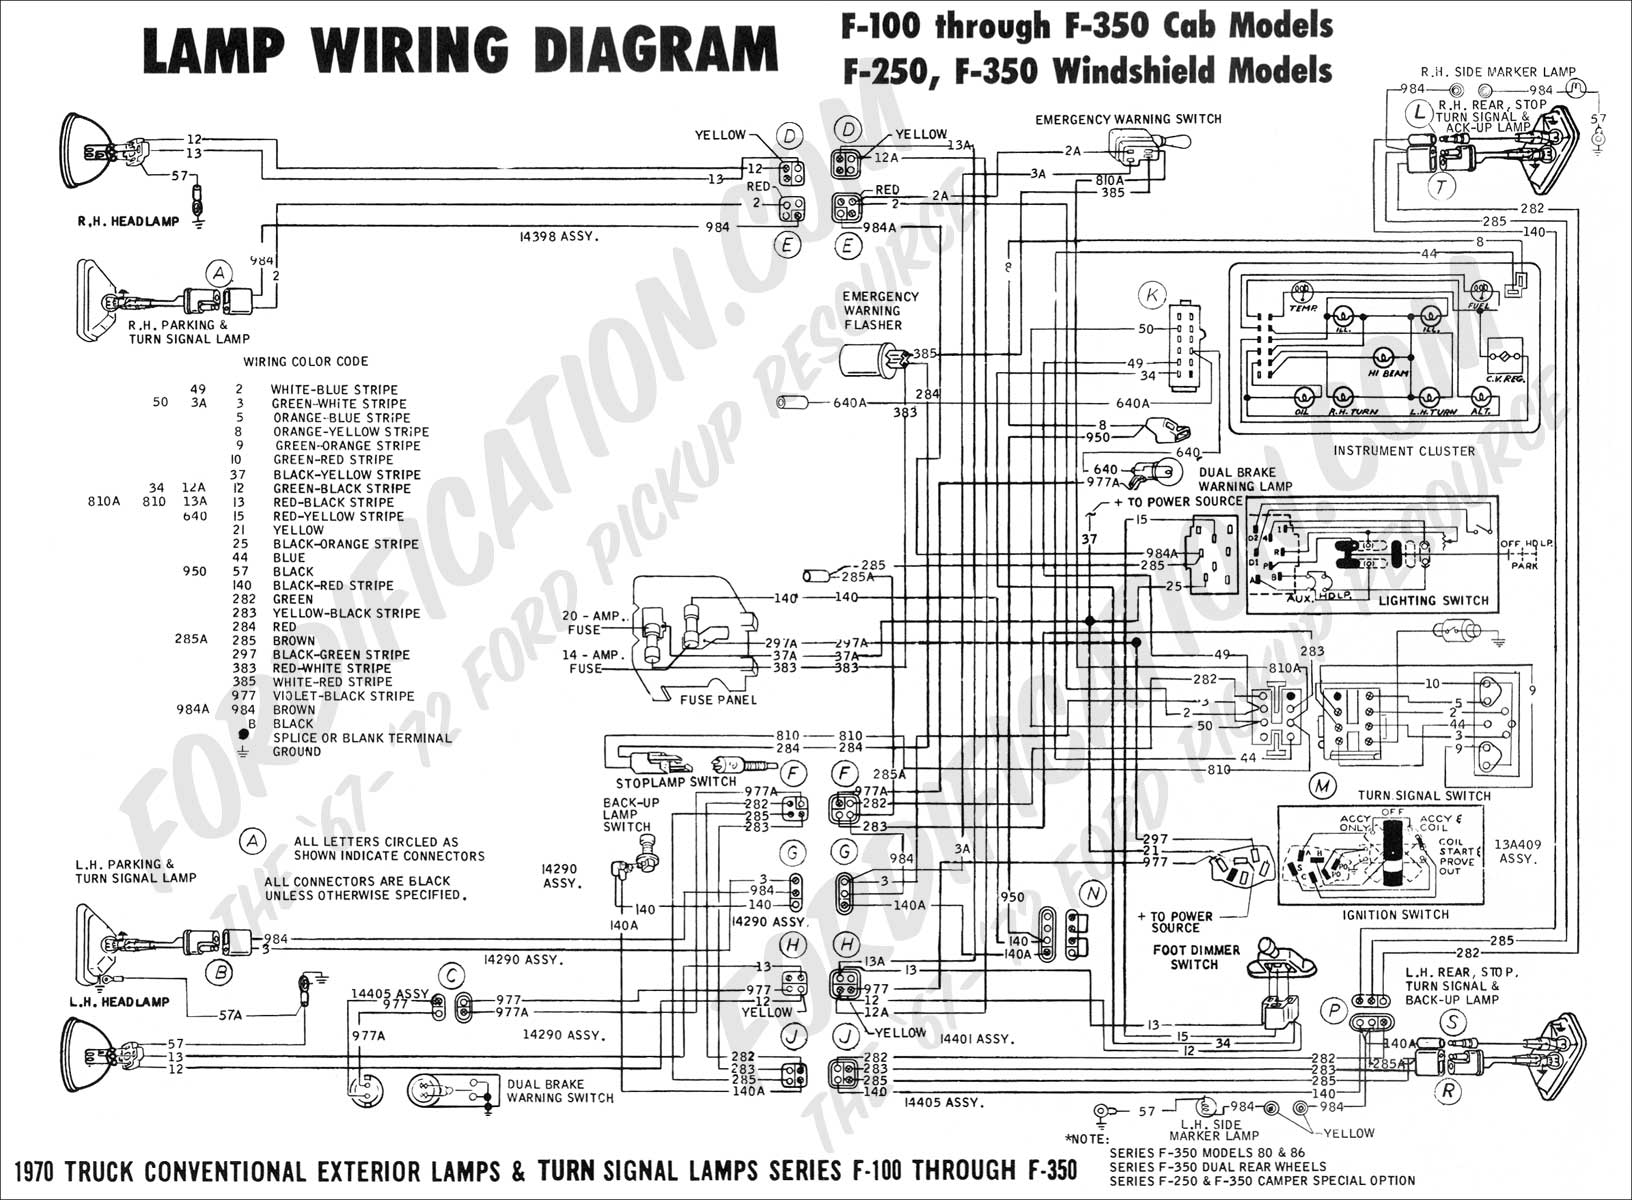 wiring diagram_70ext lights01 ford truck technical drawings and schematics section h wiring ford f250 wiring diagram at n-0.co